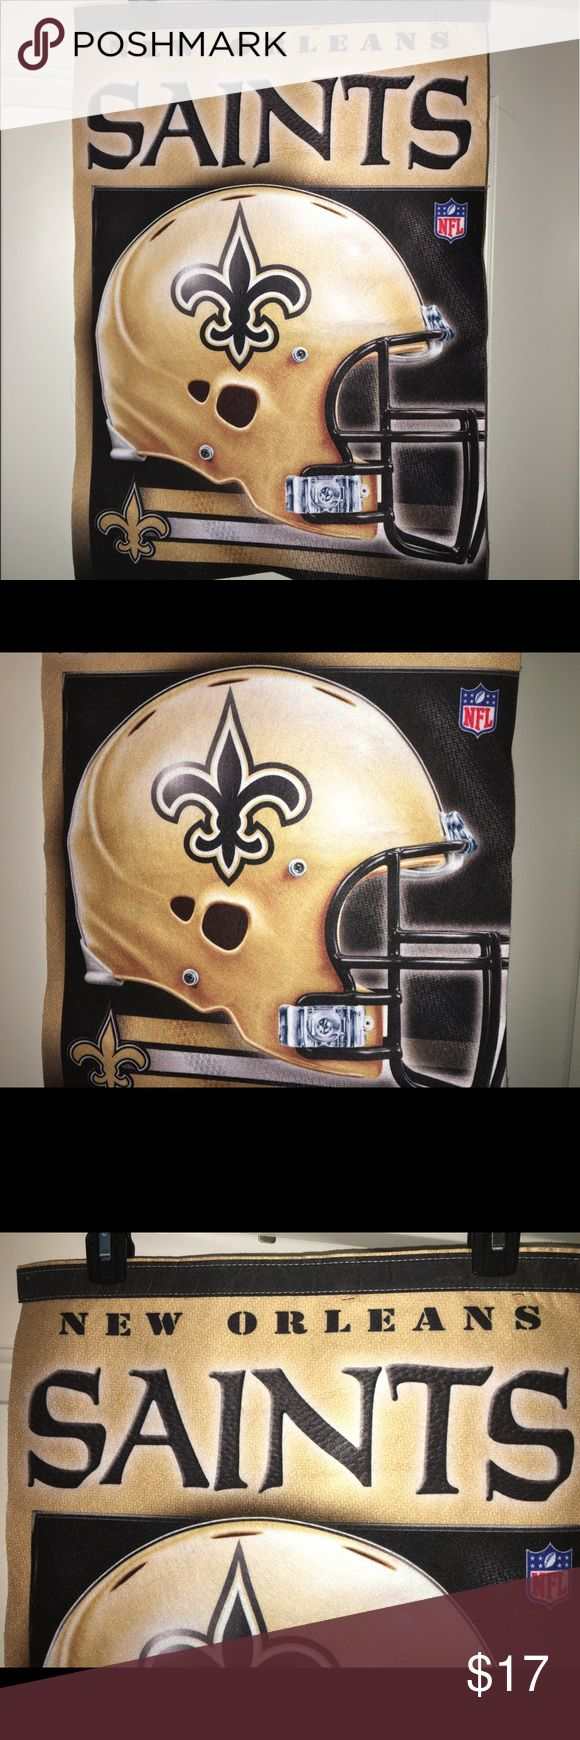 """New Orleans Saints team banner pennant flag Thank you for doing my listing, for sale is a NFL, New Orleans saints, approximately 17"""" x 26"""" team flag/Banner. No rips or stains. If you have any questions or would like additional photos please feel free to ask.  This would be great in a child's room, dorm room, hanging in your front window letting the neighborhood and know that you are a Saints fan!  #WhoDatNation NFL Accessories"""